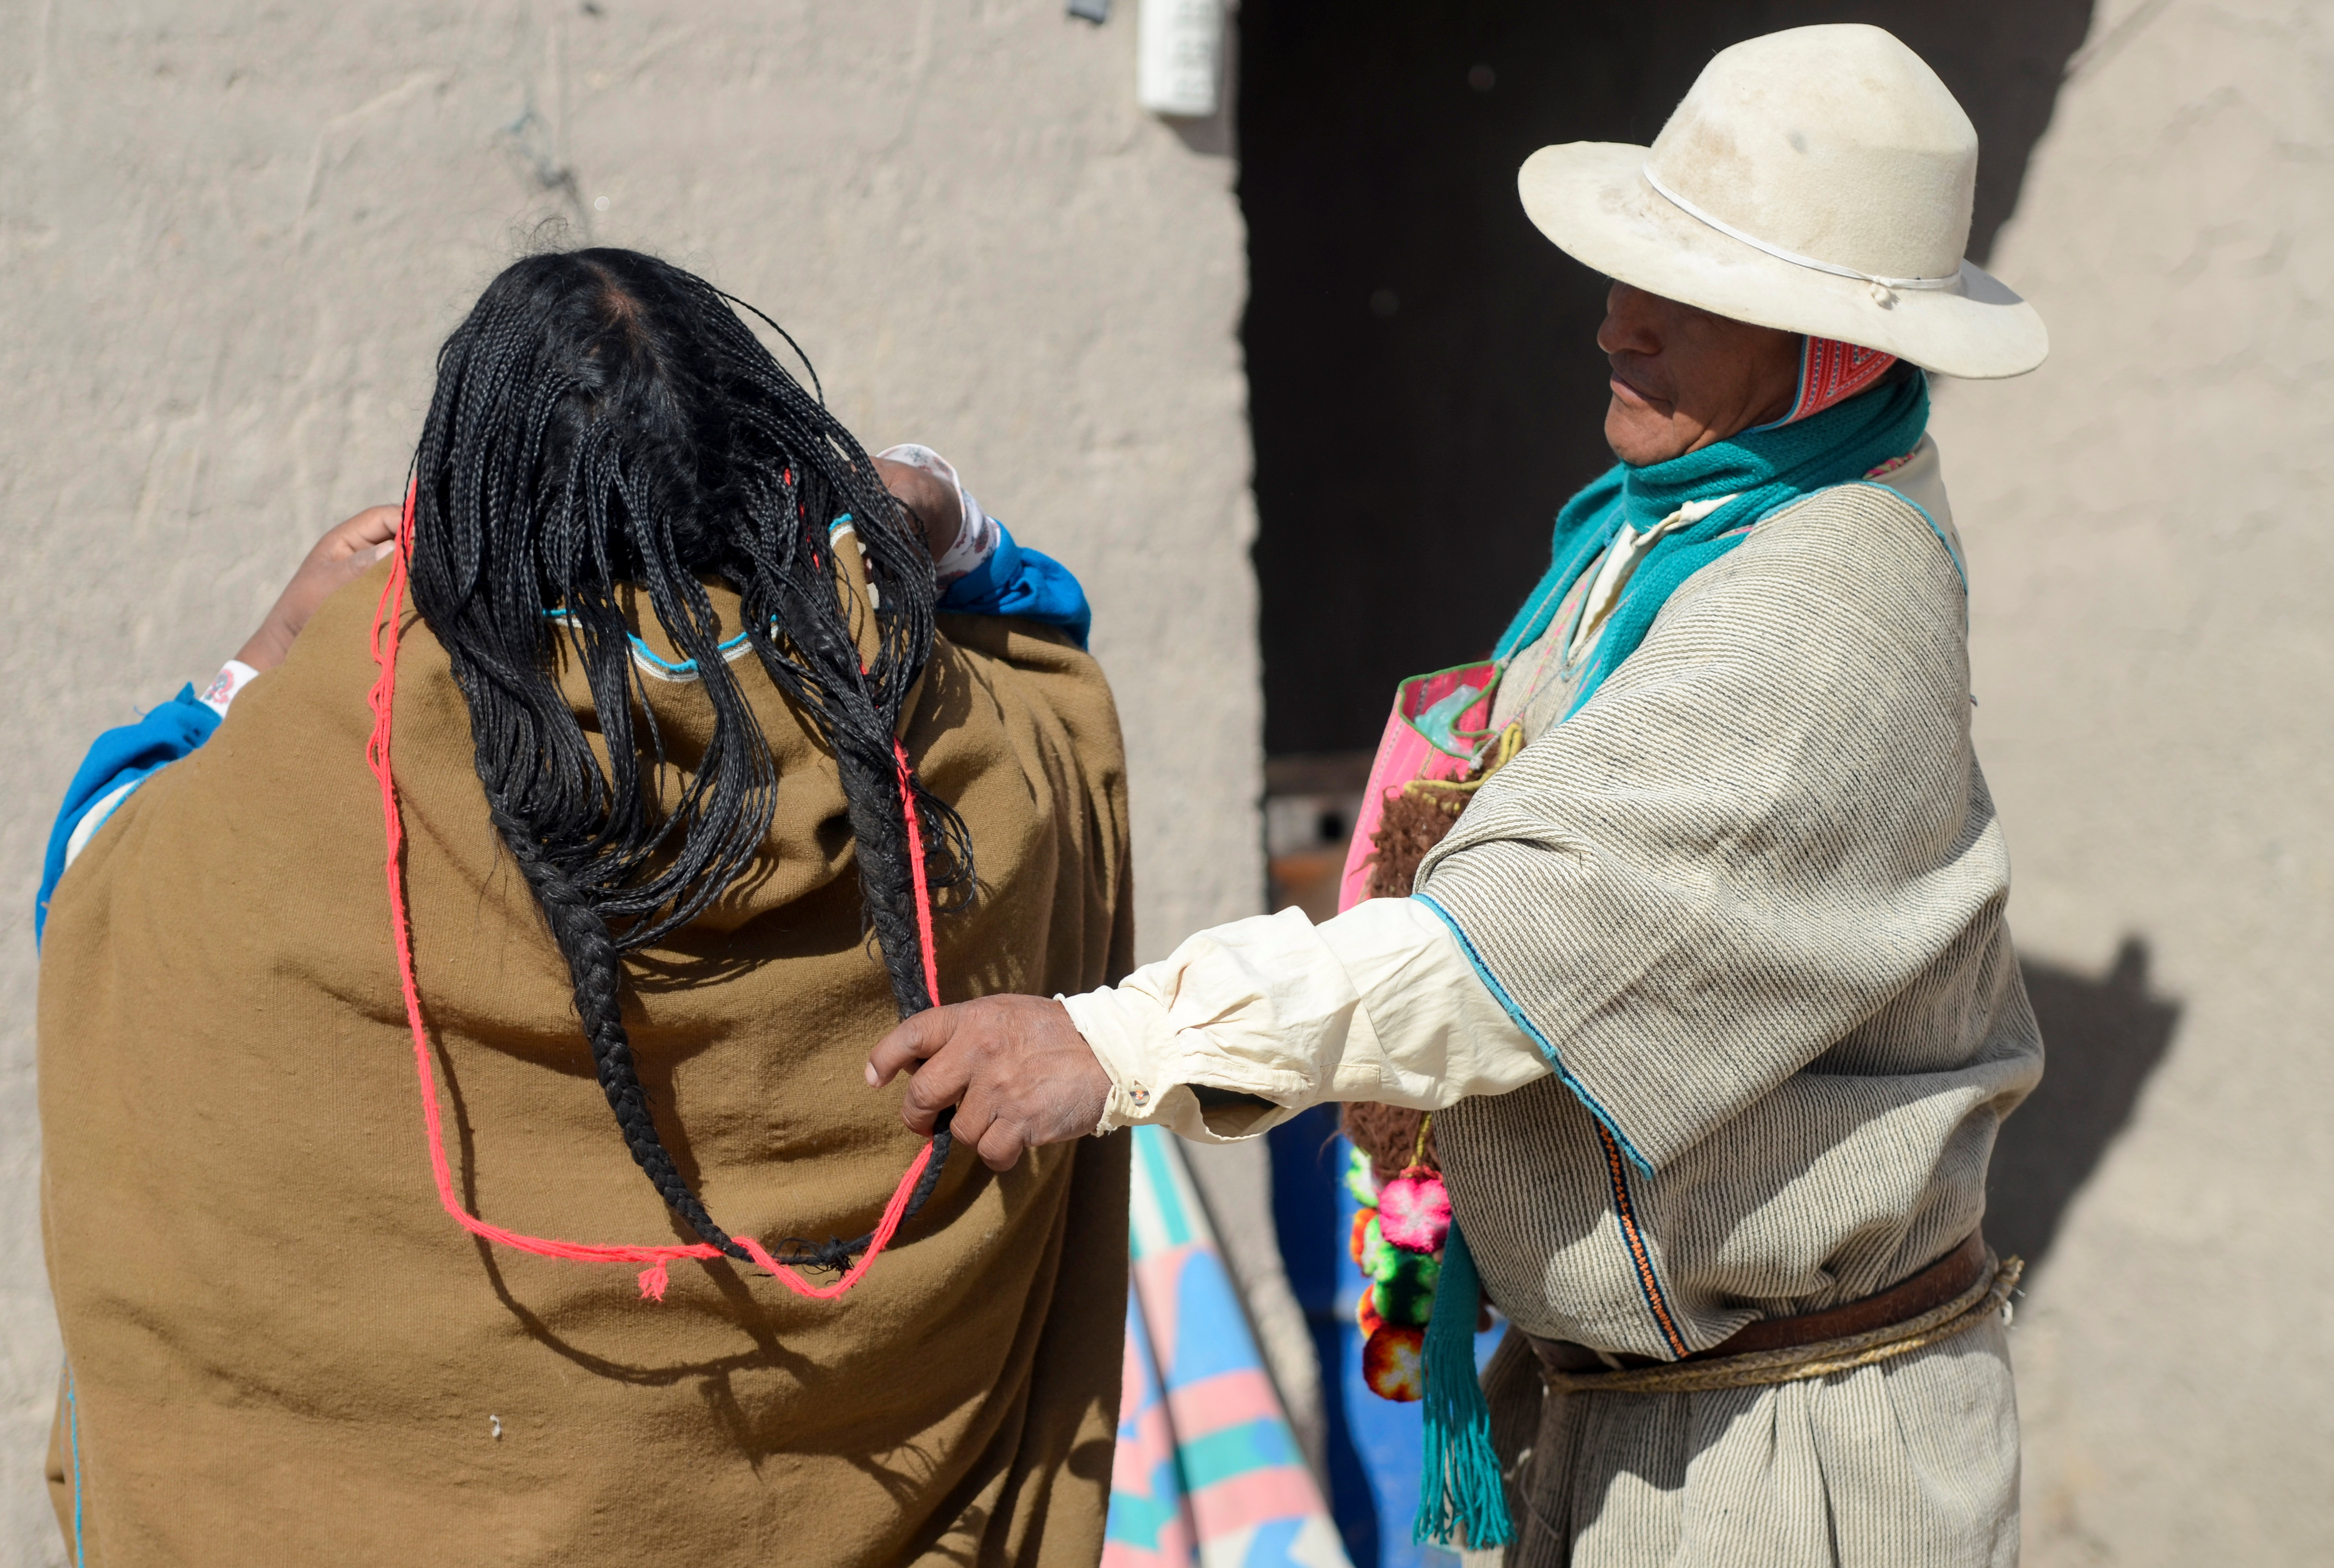 Fausto Lopez helps his wife Petronila Mollo with her hair before going to the main square to be vaccinated against the coronavirus disease (COVID-19) along with others, in Uru Chipaya, Bolivia July 23, 2021. REUTERS/Claudia Morales